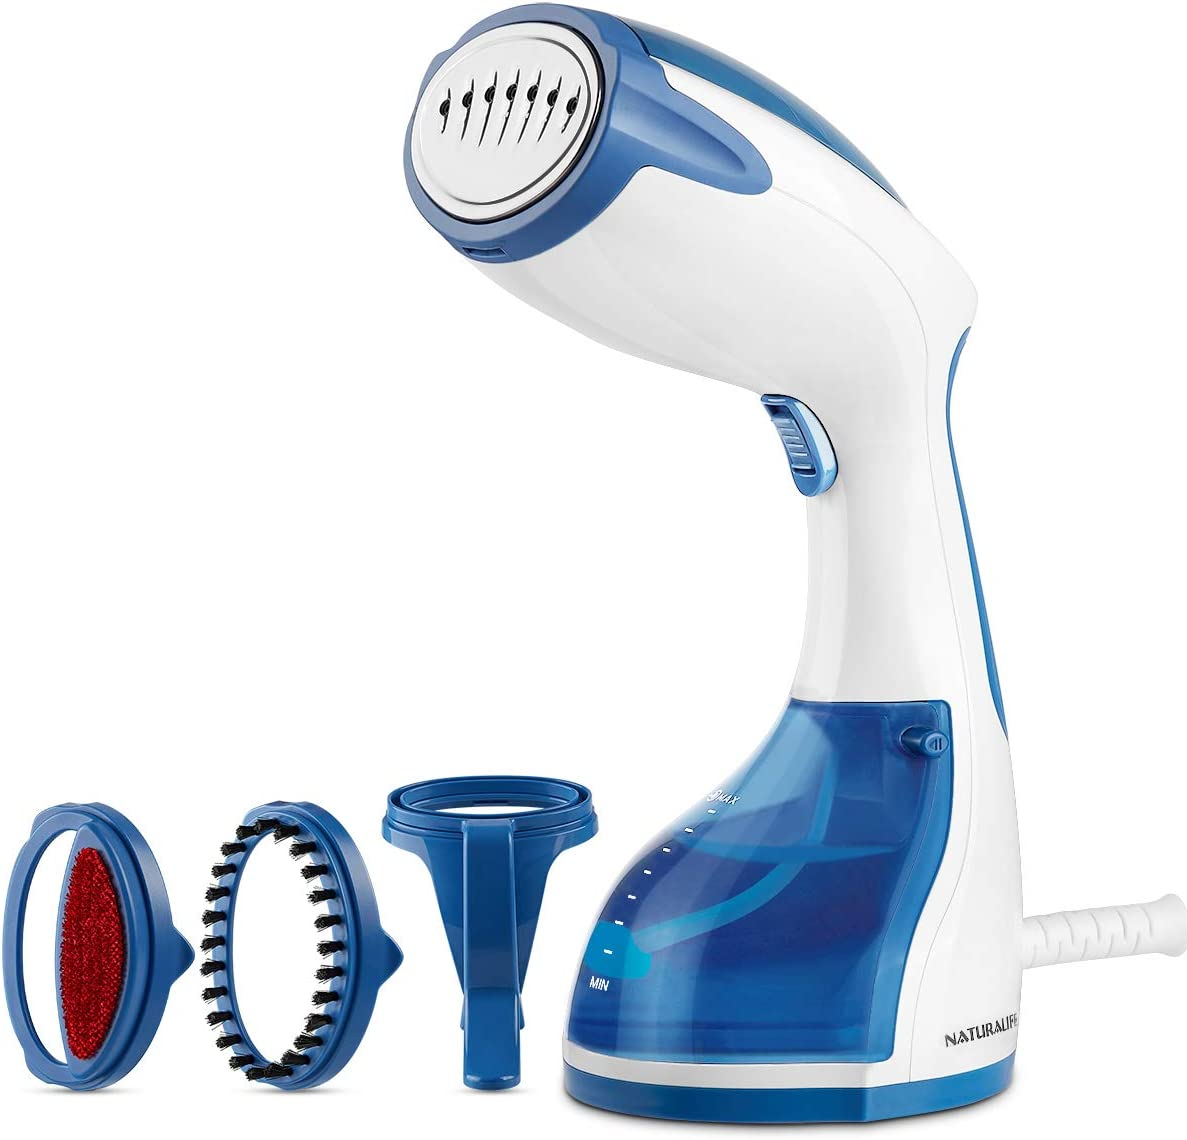 Amazon coupon code for Powerful 1200-Watt Handheld Steamer for Clothes